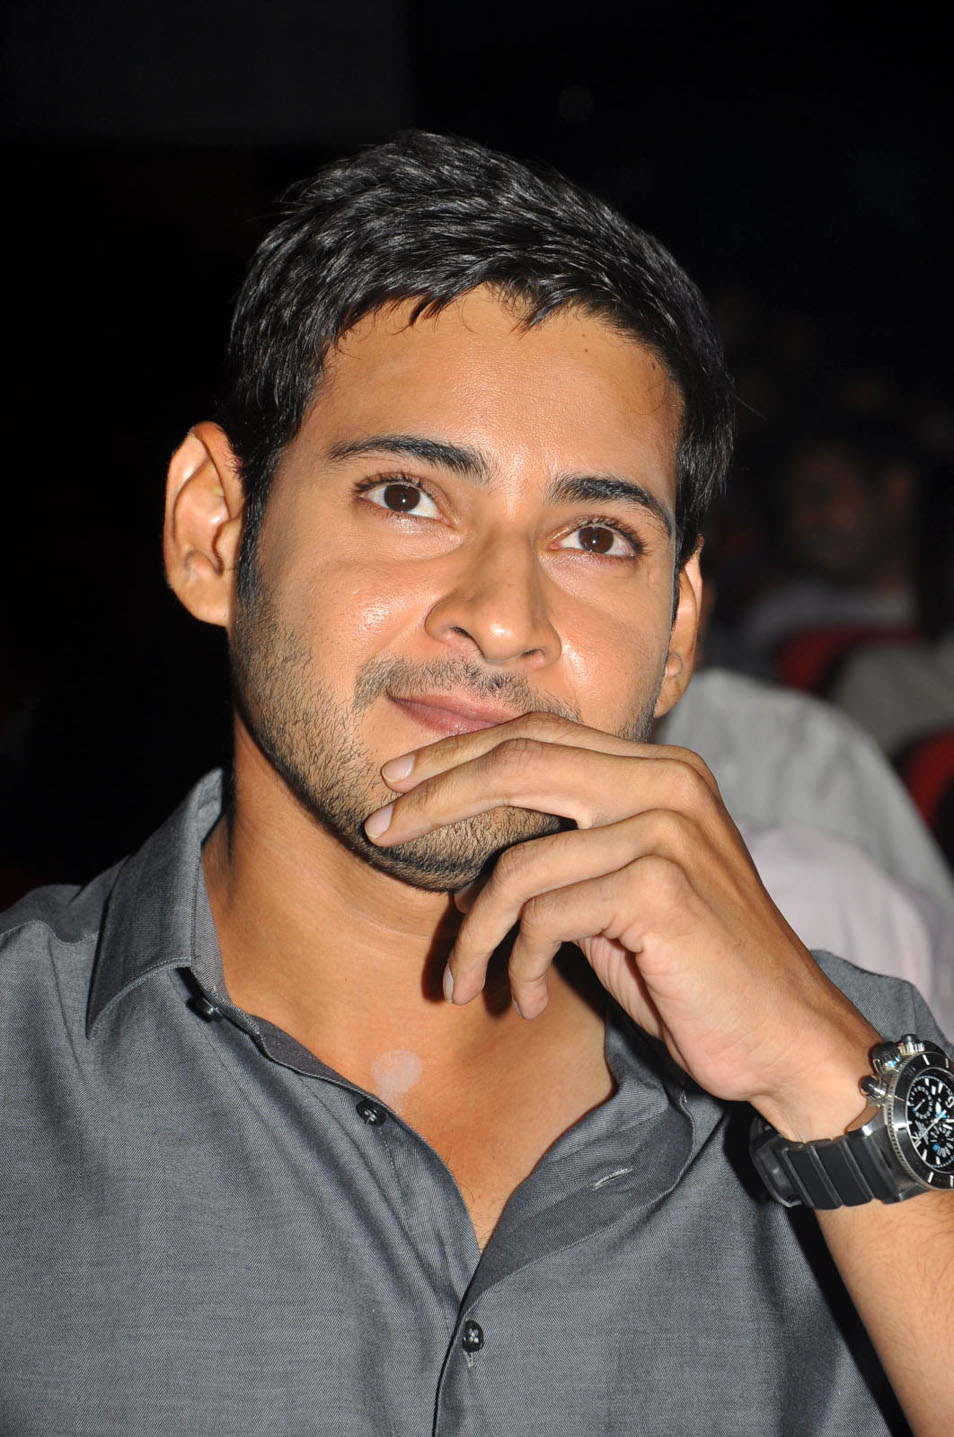 Mahesh Babu Aagadu, Srinu Vaitla Aagadu, Mahesh Babu Aagadu Movie, Aagadu Telugu Movie